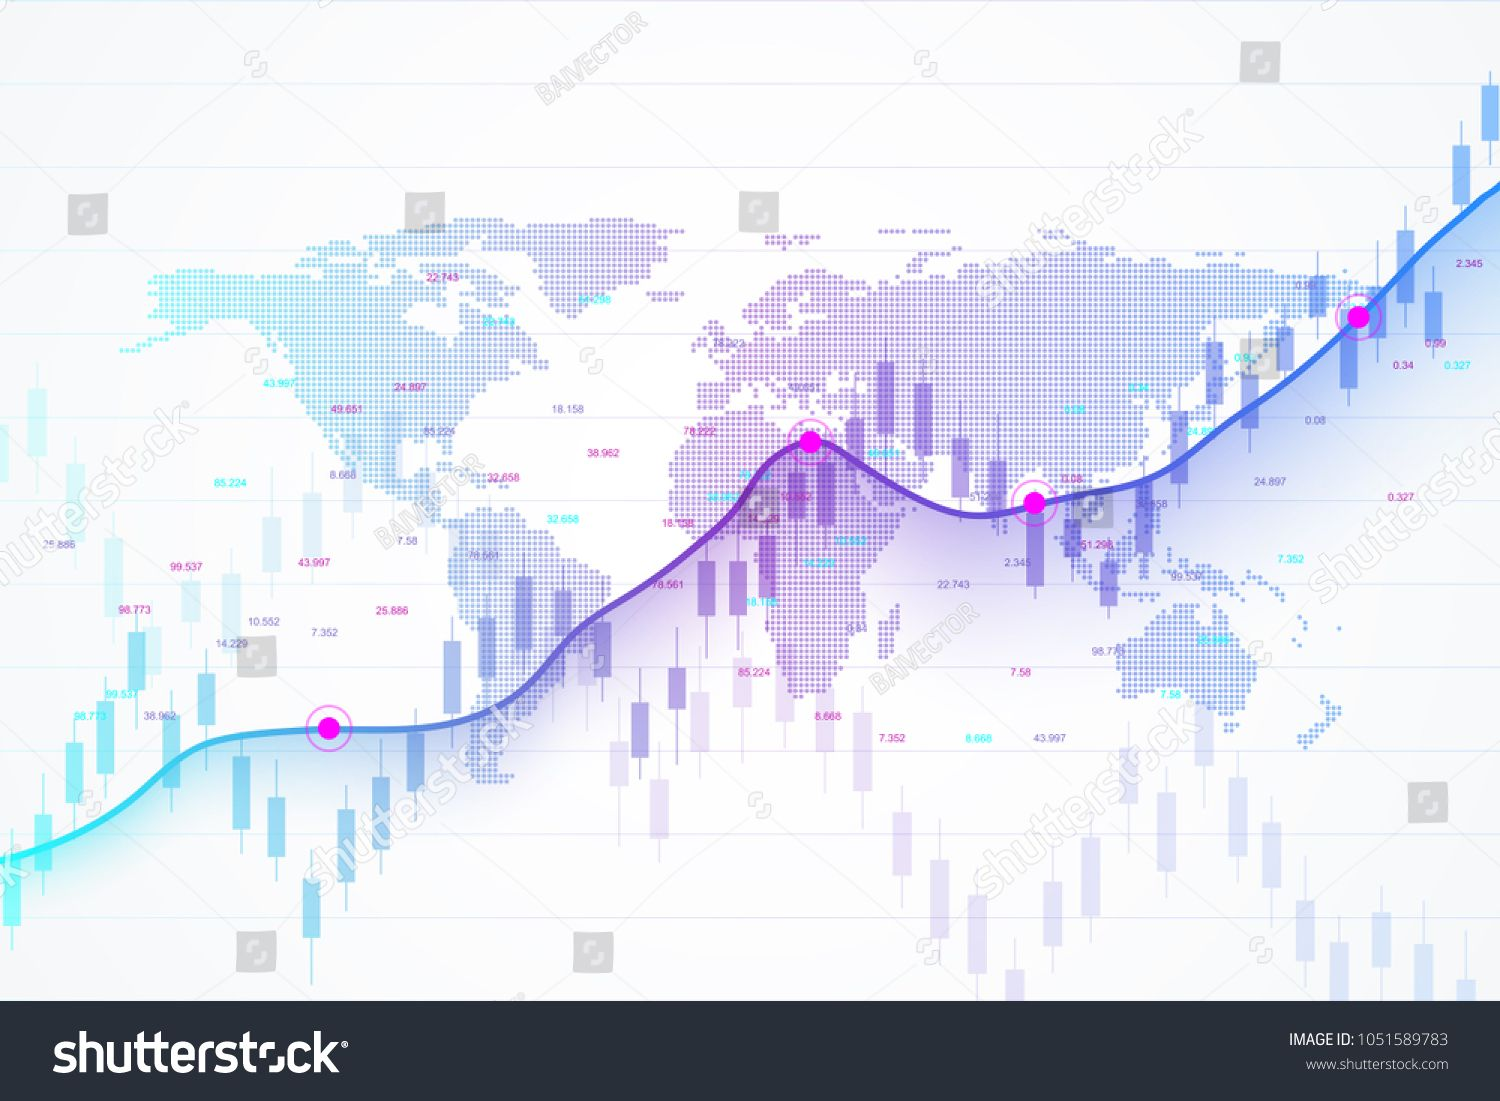 Stock Market And Exchange Candle Stick Graph Chart Of Stock Market Investment Trading Stock Market Data Stock Market Data Stock Market Investing Stock Charts